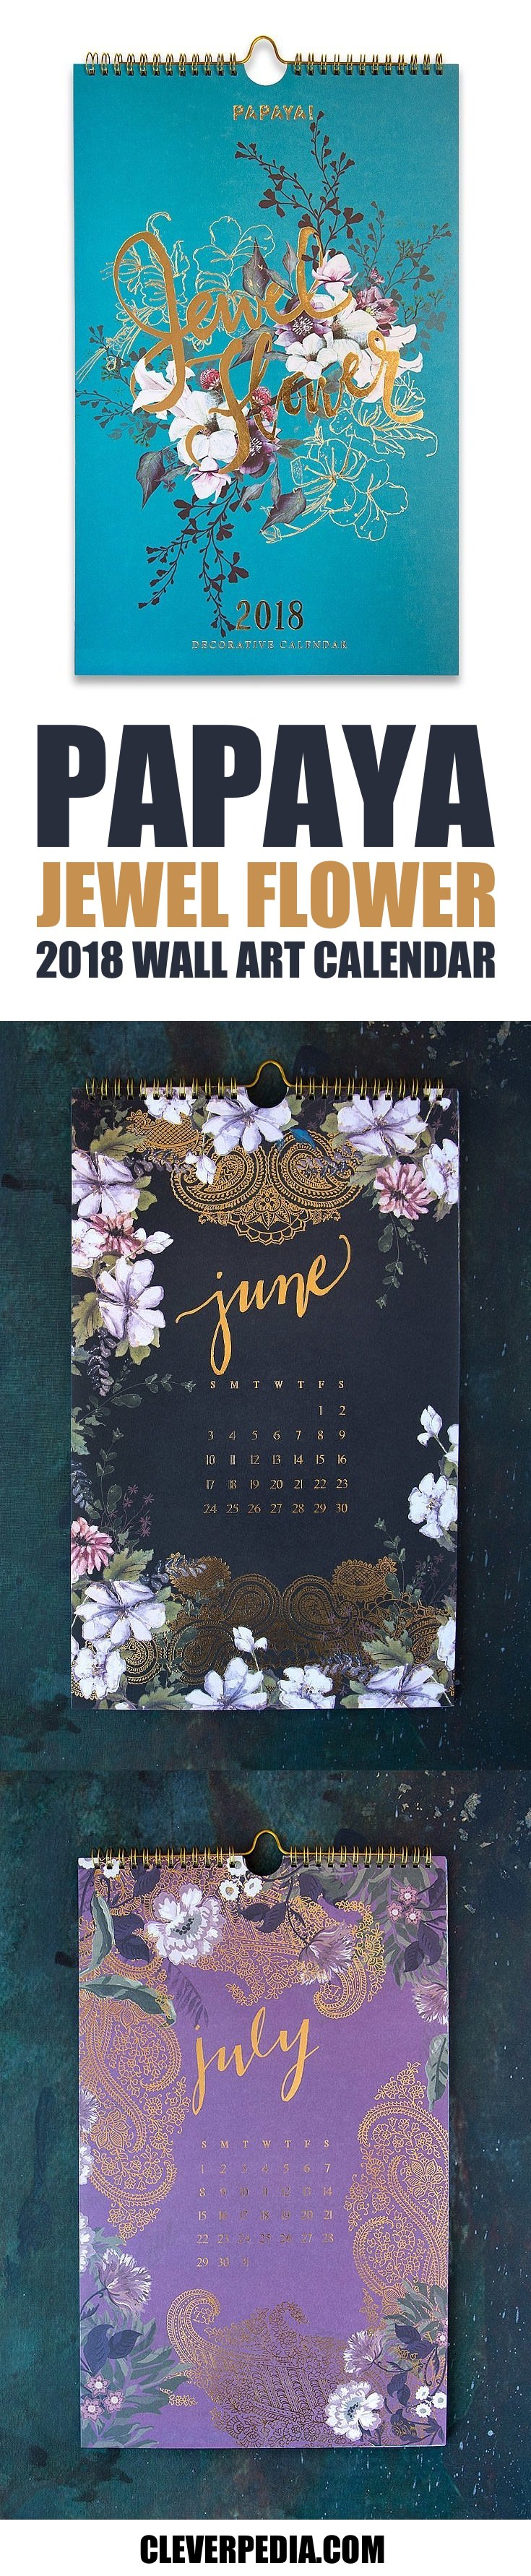 This lovely calendar by Papaya features flowers mixed with gold foil patterns. I love the way the gold foil pops on the jewel tone paper. This wall art calendar truly lives up to its name!